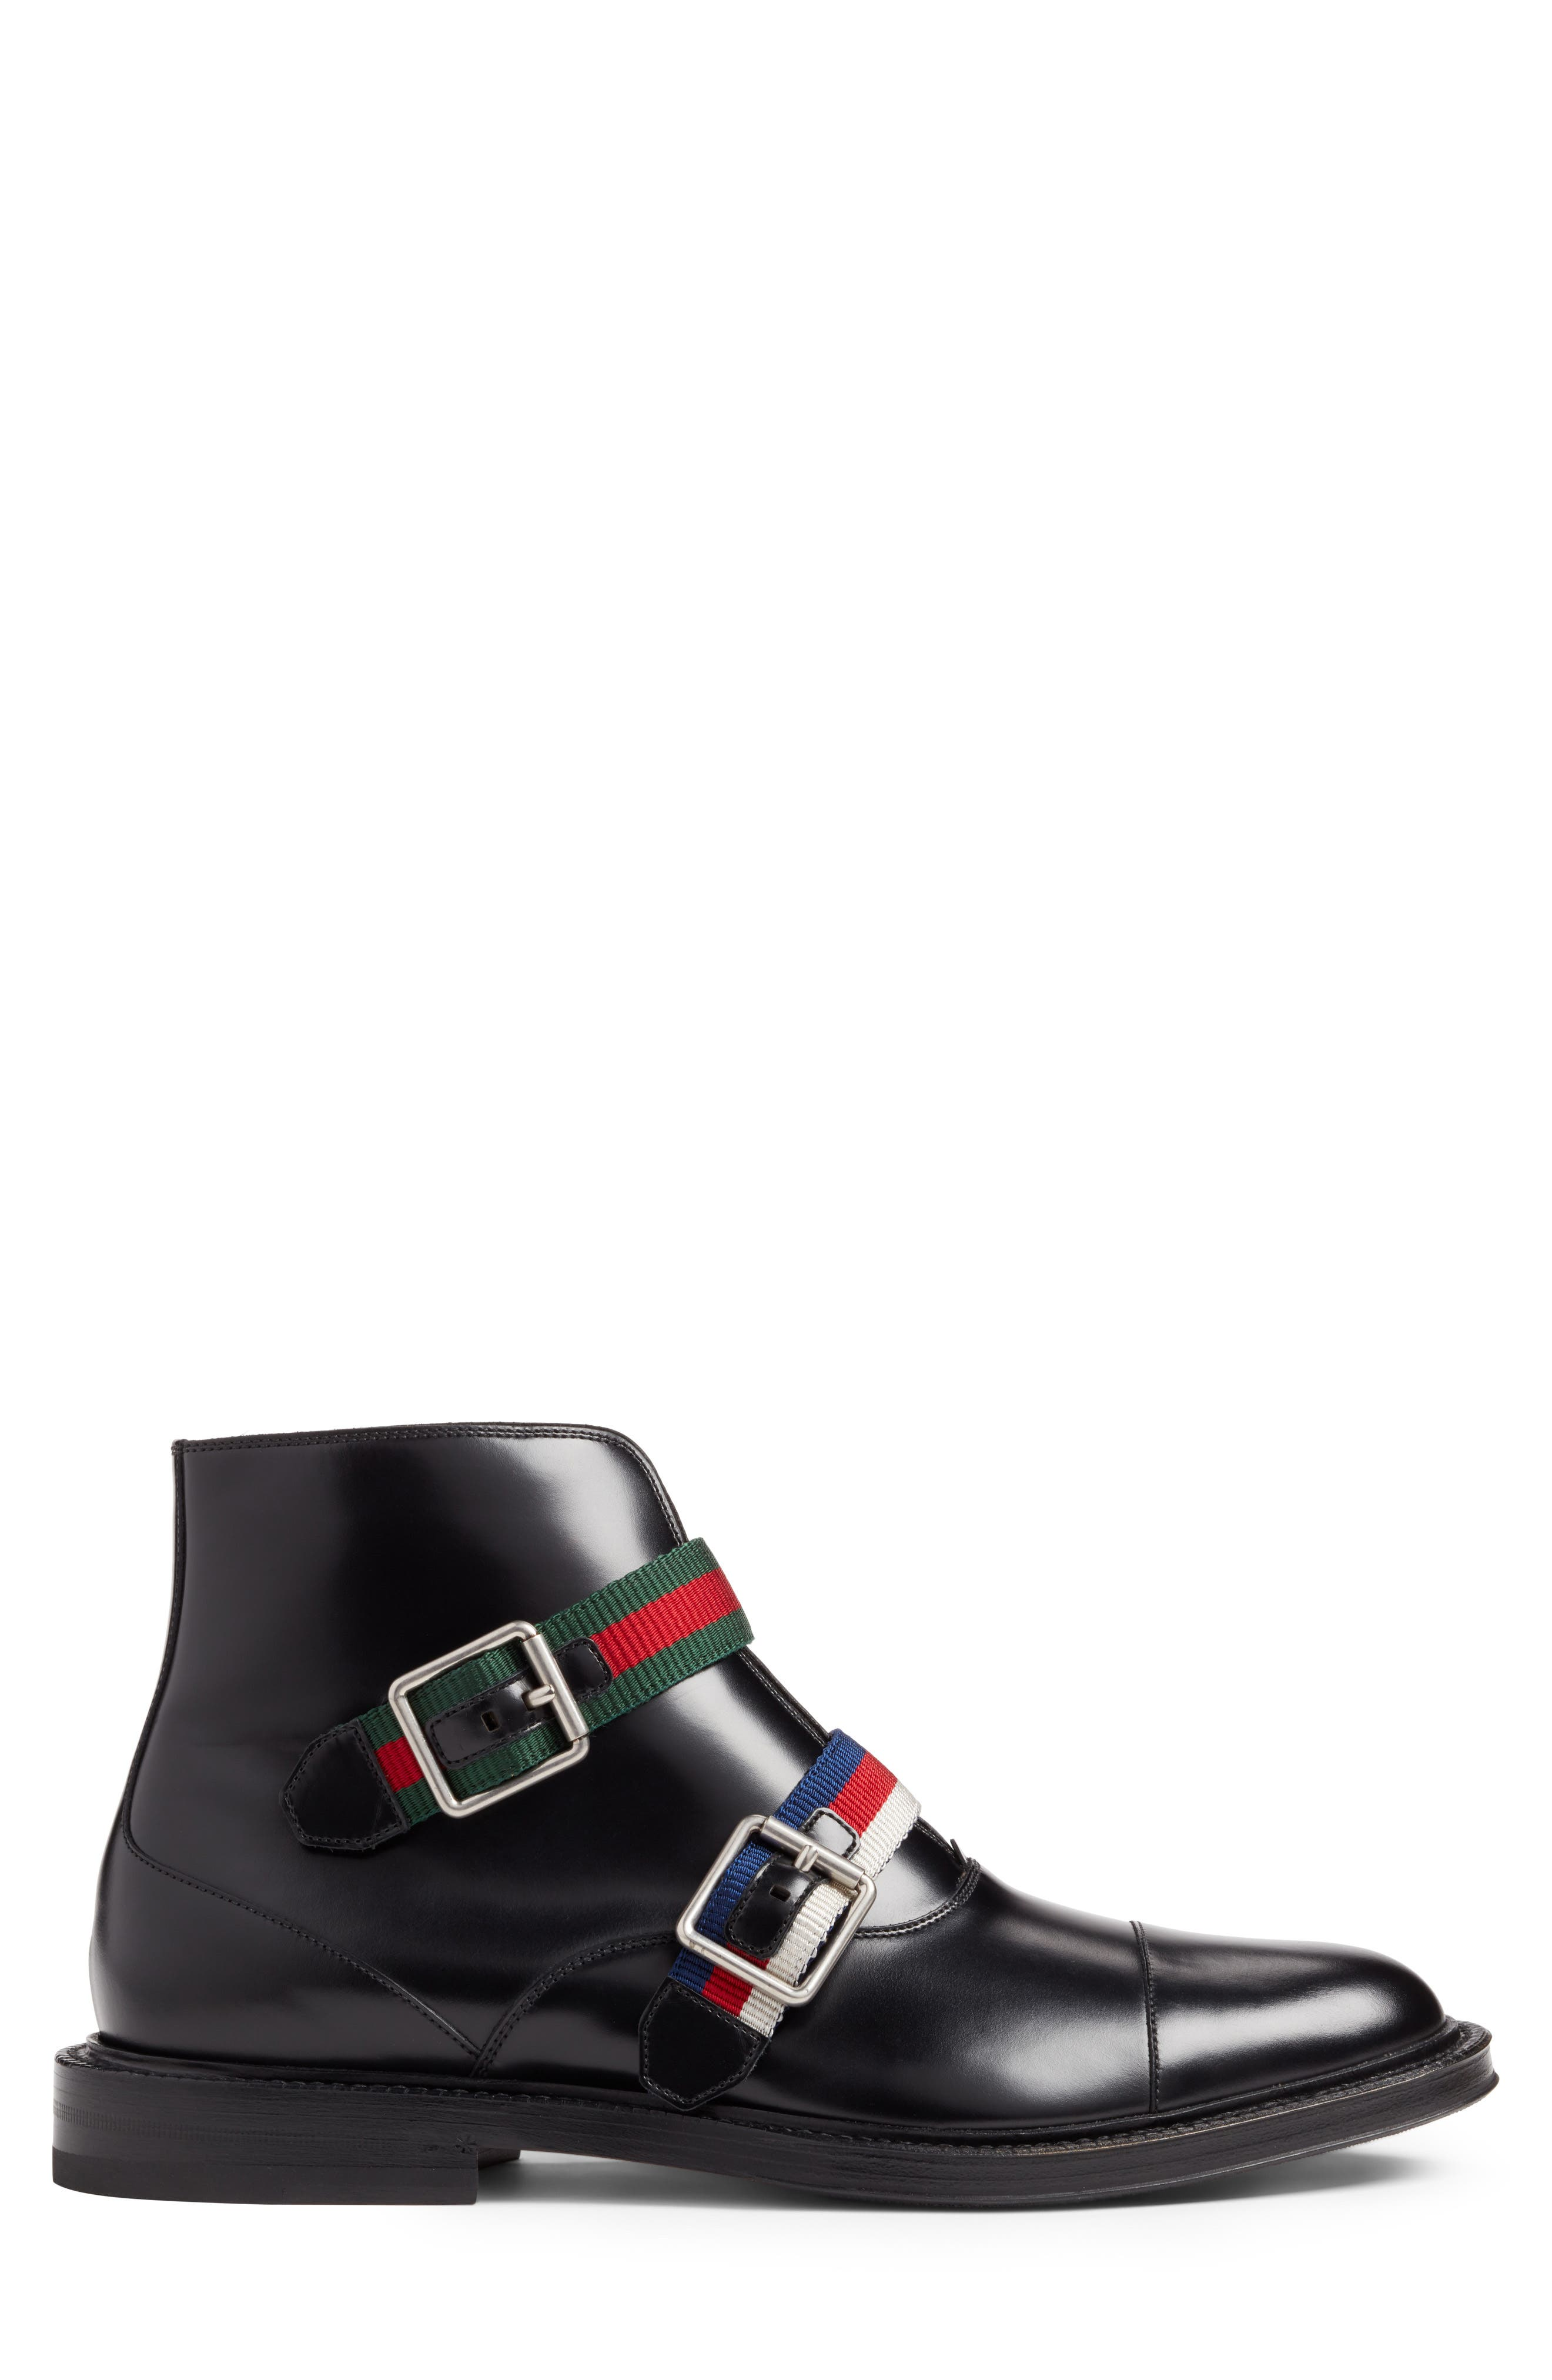 Beyond Belted Boot,                             Alternate thumbnail 3, color,                             009